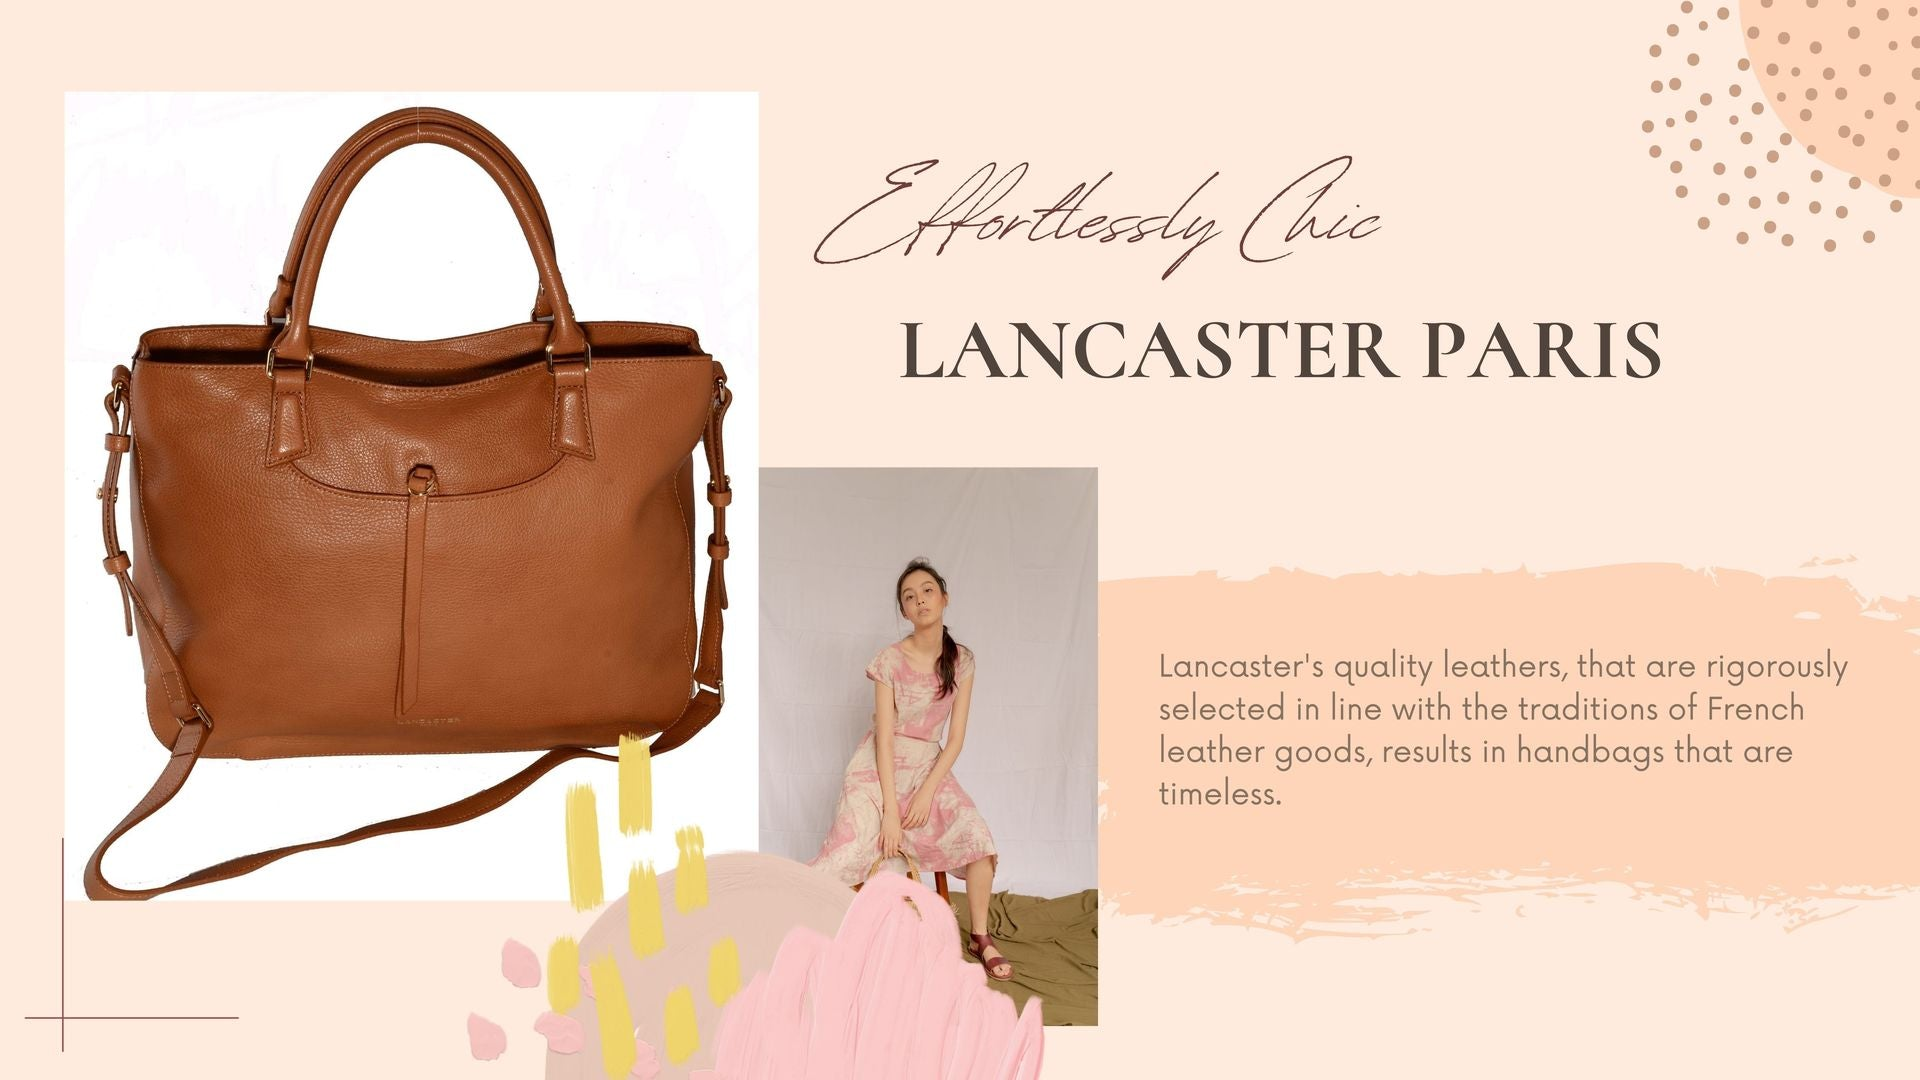 Designer Handbags for the professional woman